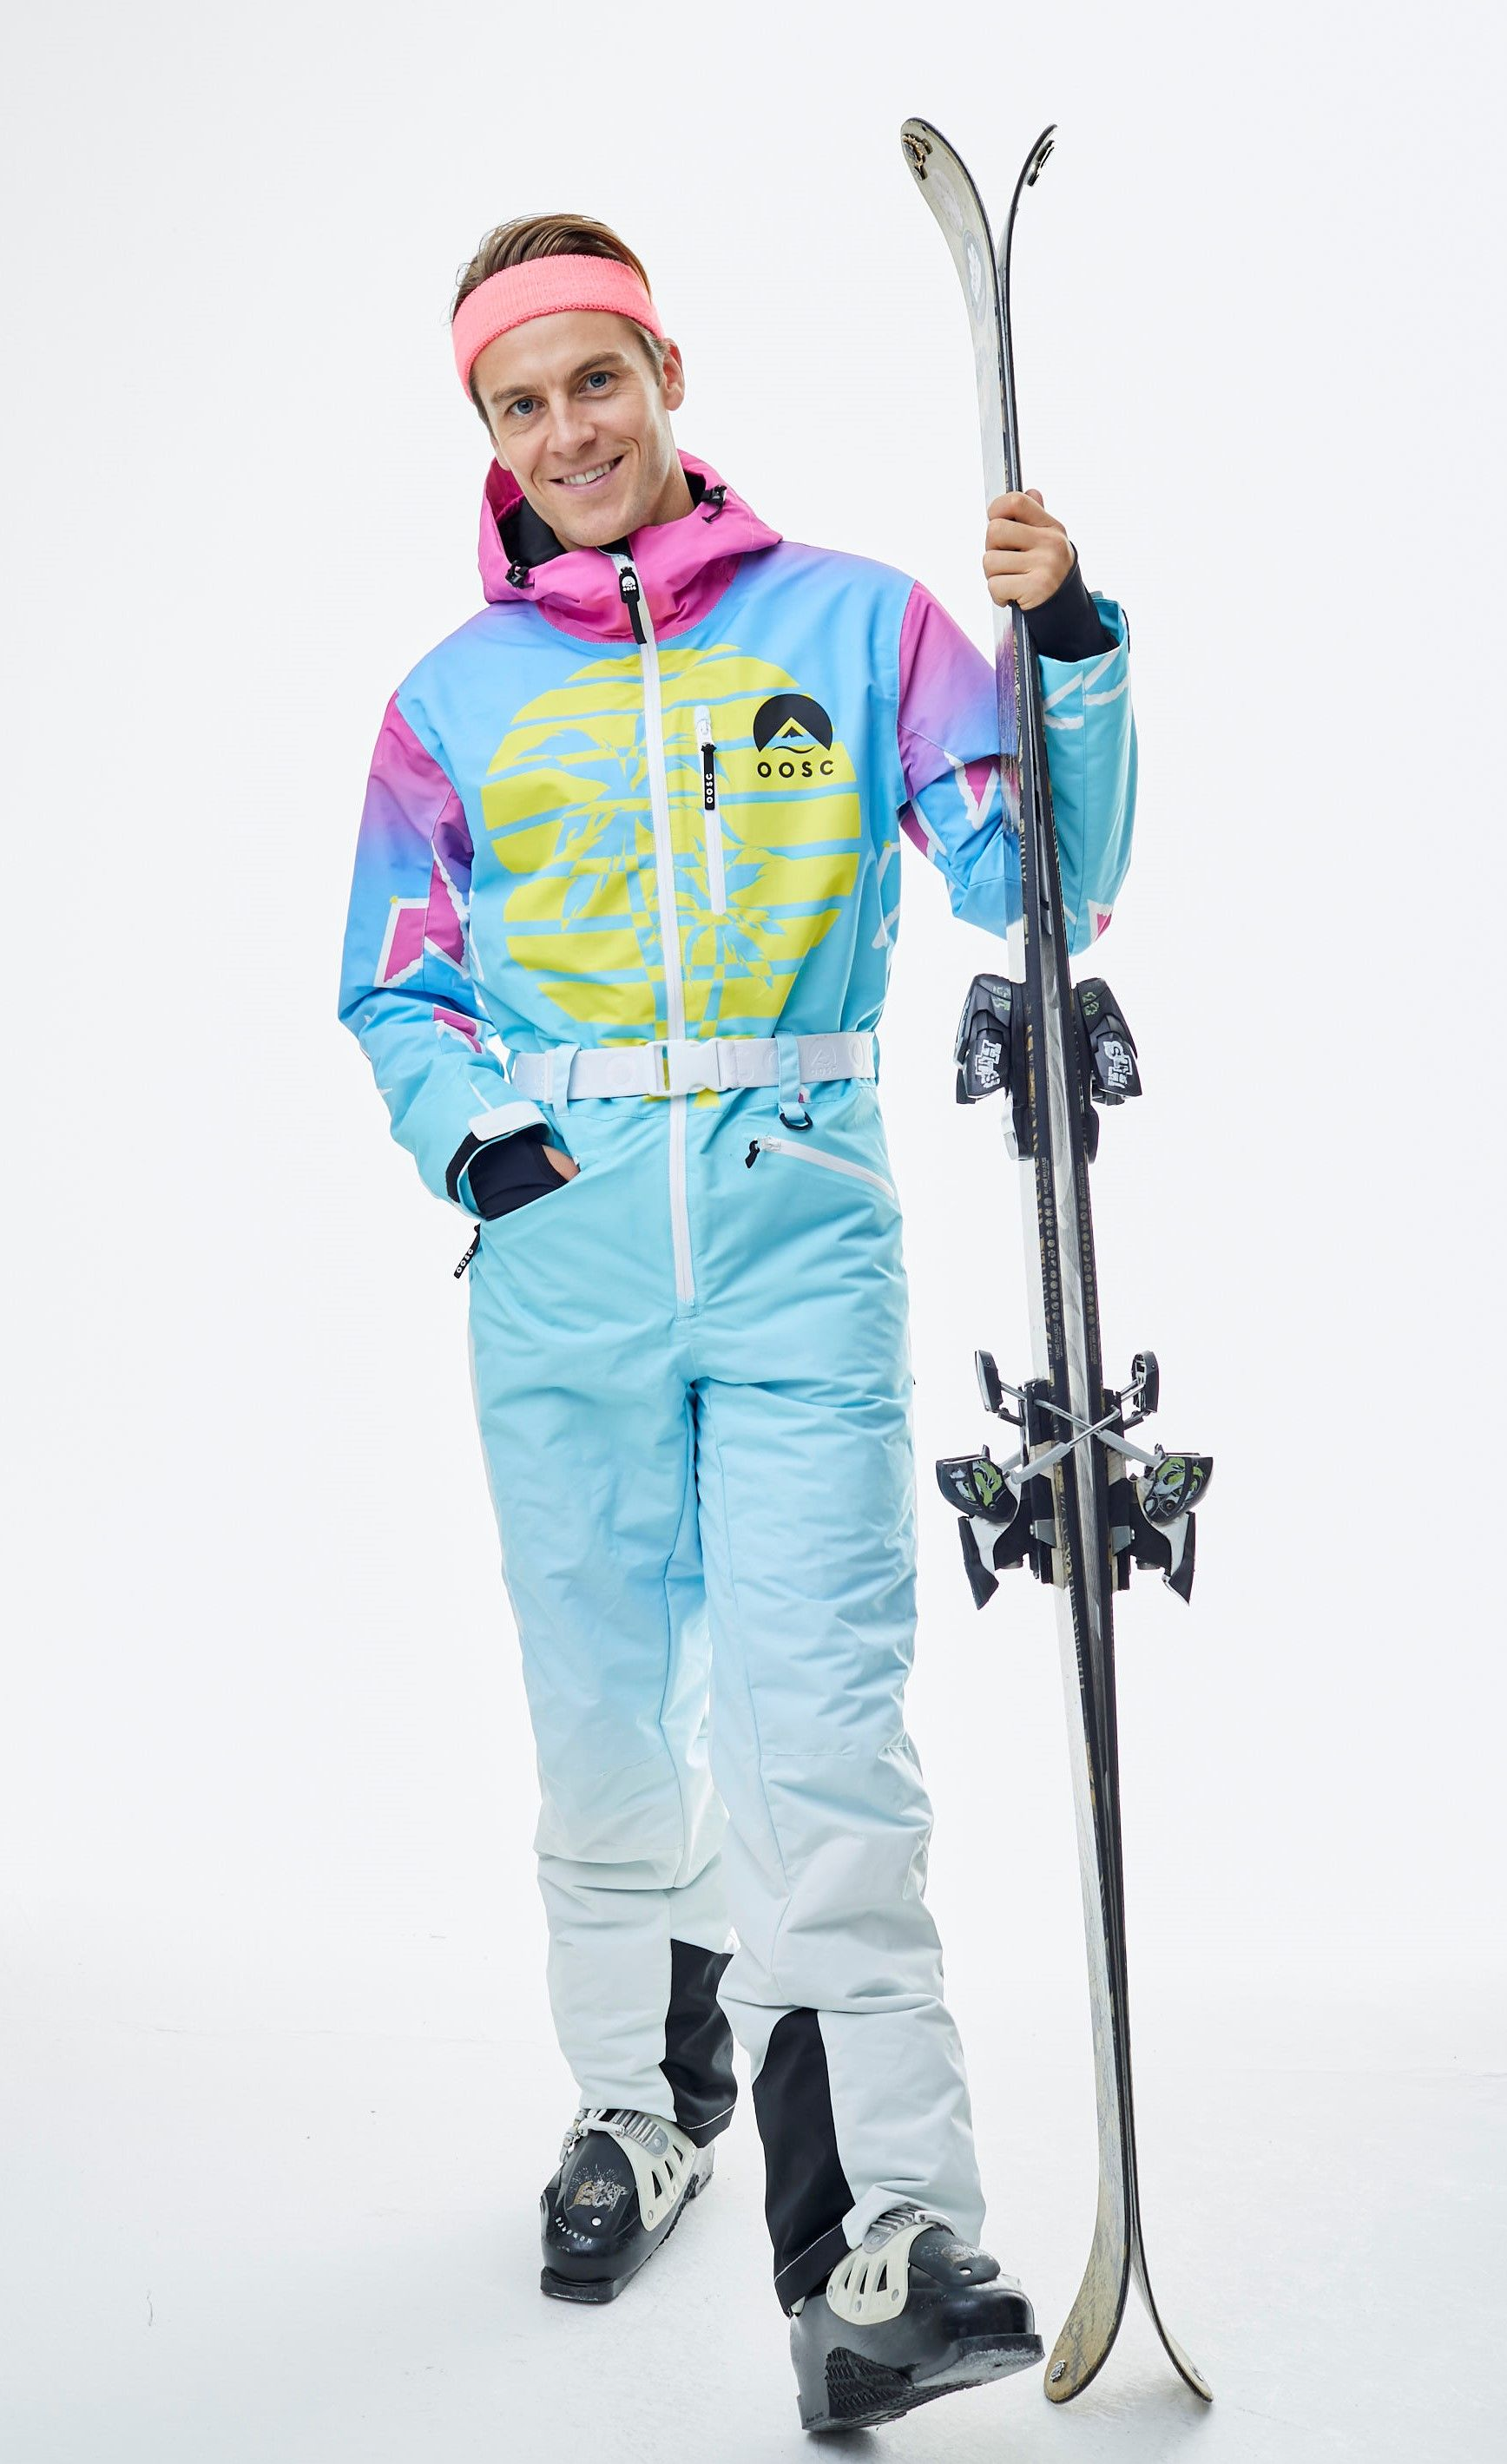 Balearic Baller Oosc Unisex One Piece Ski Suit Oosc Clothing In 2020 Clothes One Piece Retro Fashion 80s